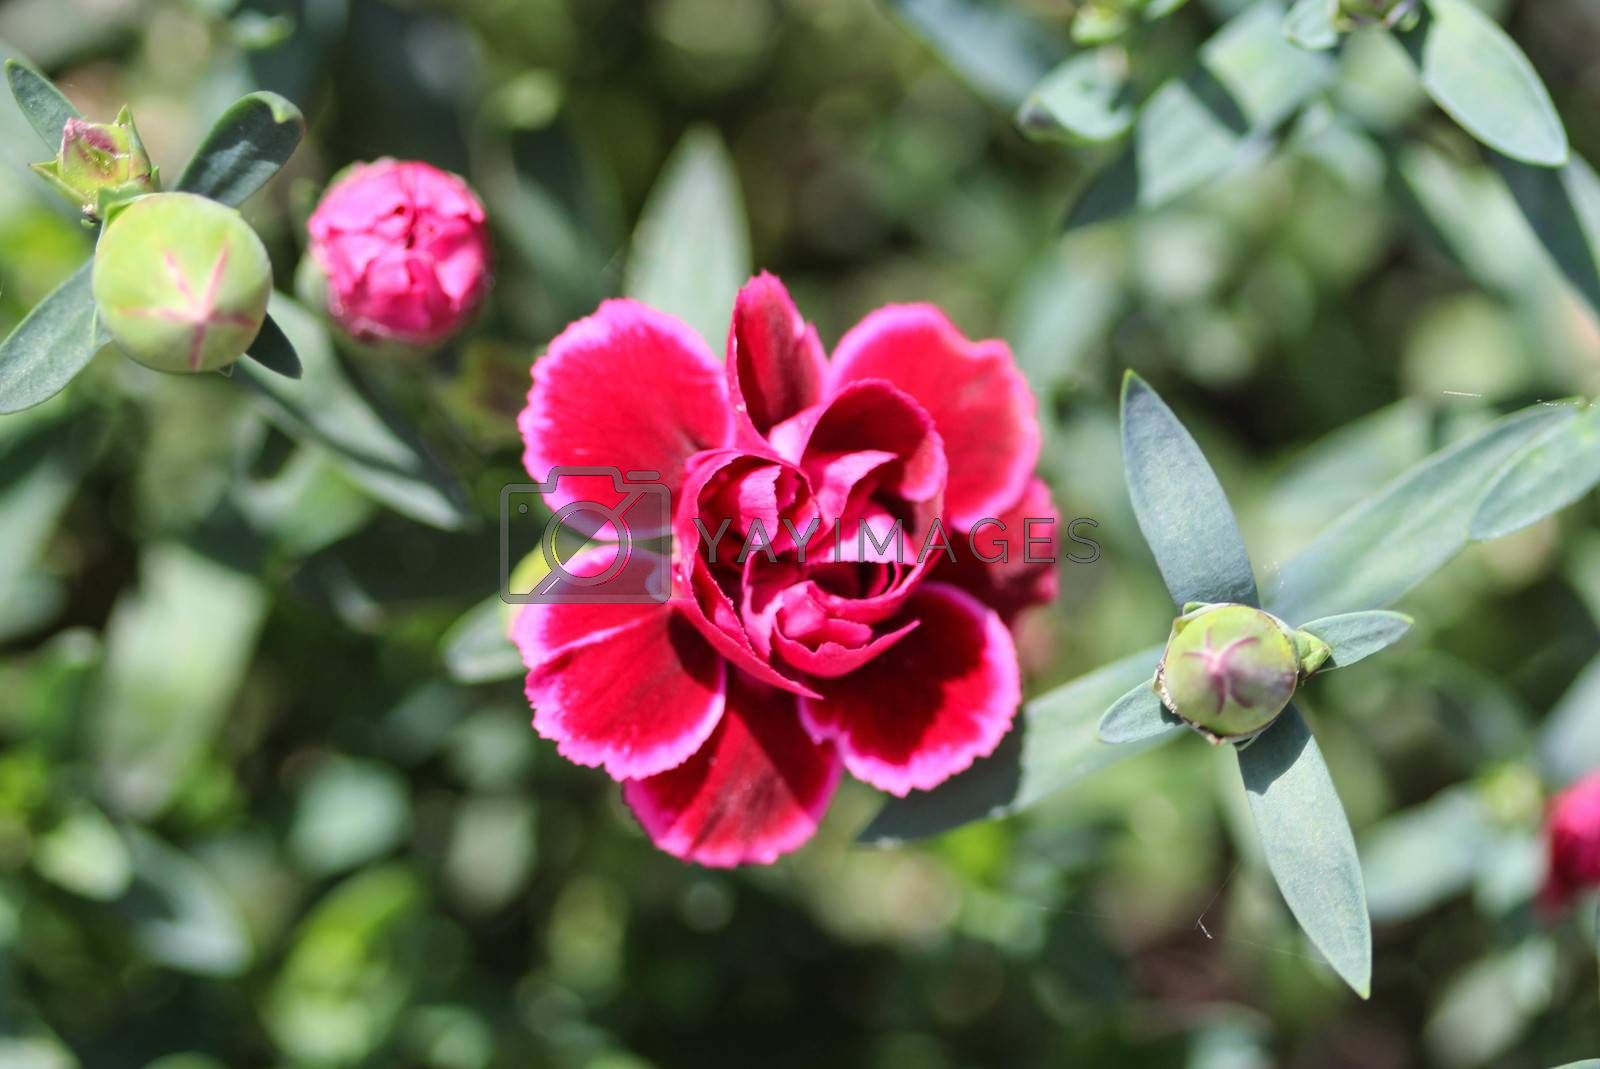 Royalty free image of Dianthus caryophyllus, commonly known as the carnation or clove pink, is a species of Dianthus. This flower is blooming in spring in a garden by michaelmeijer